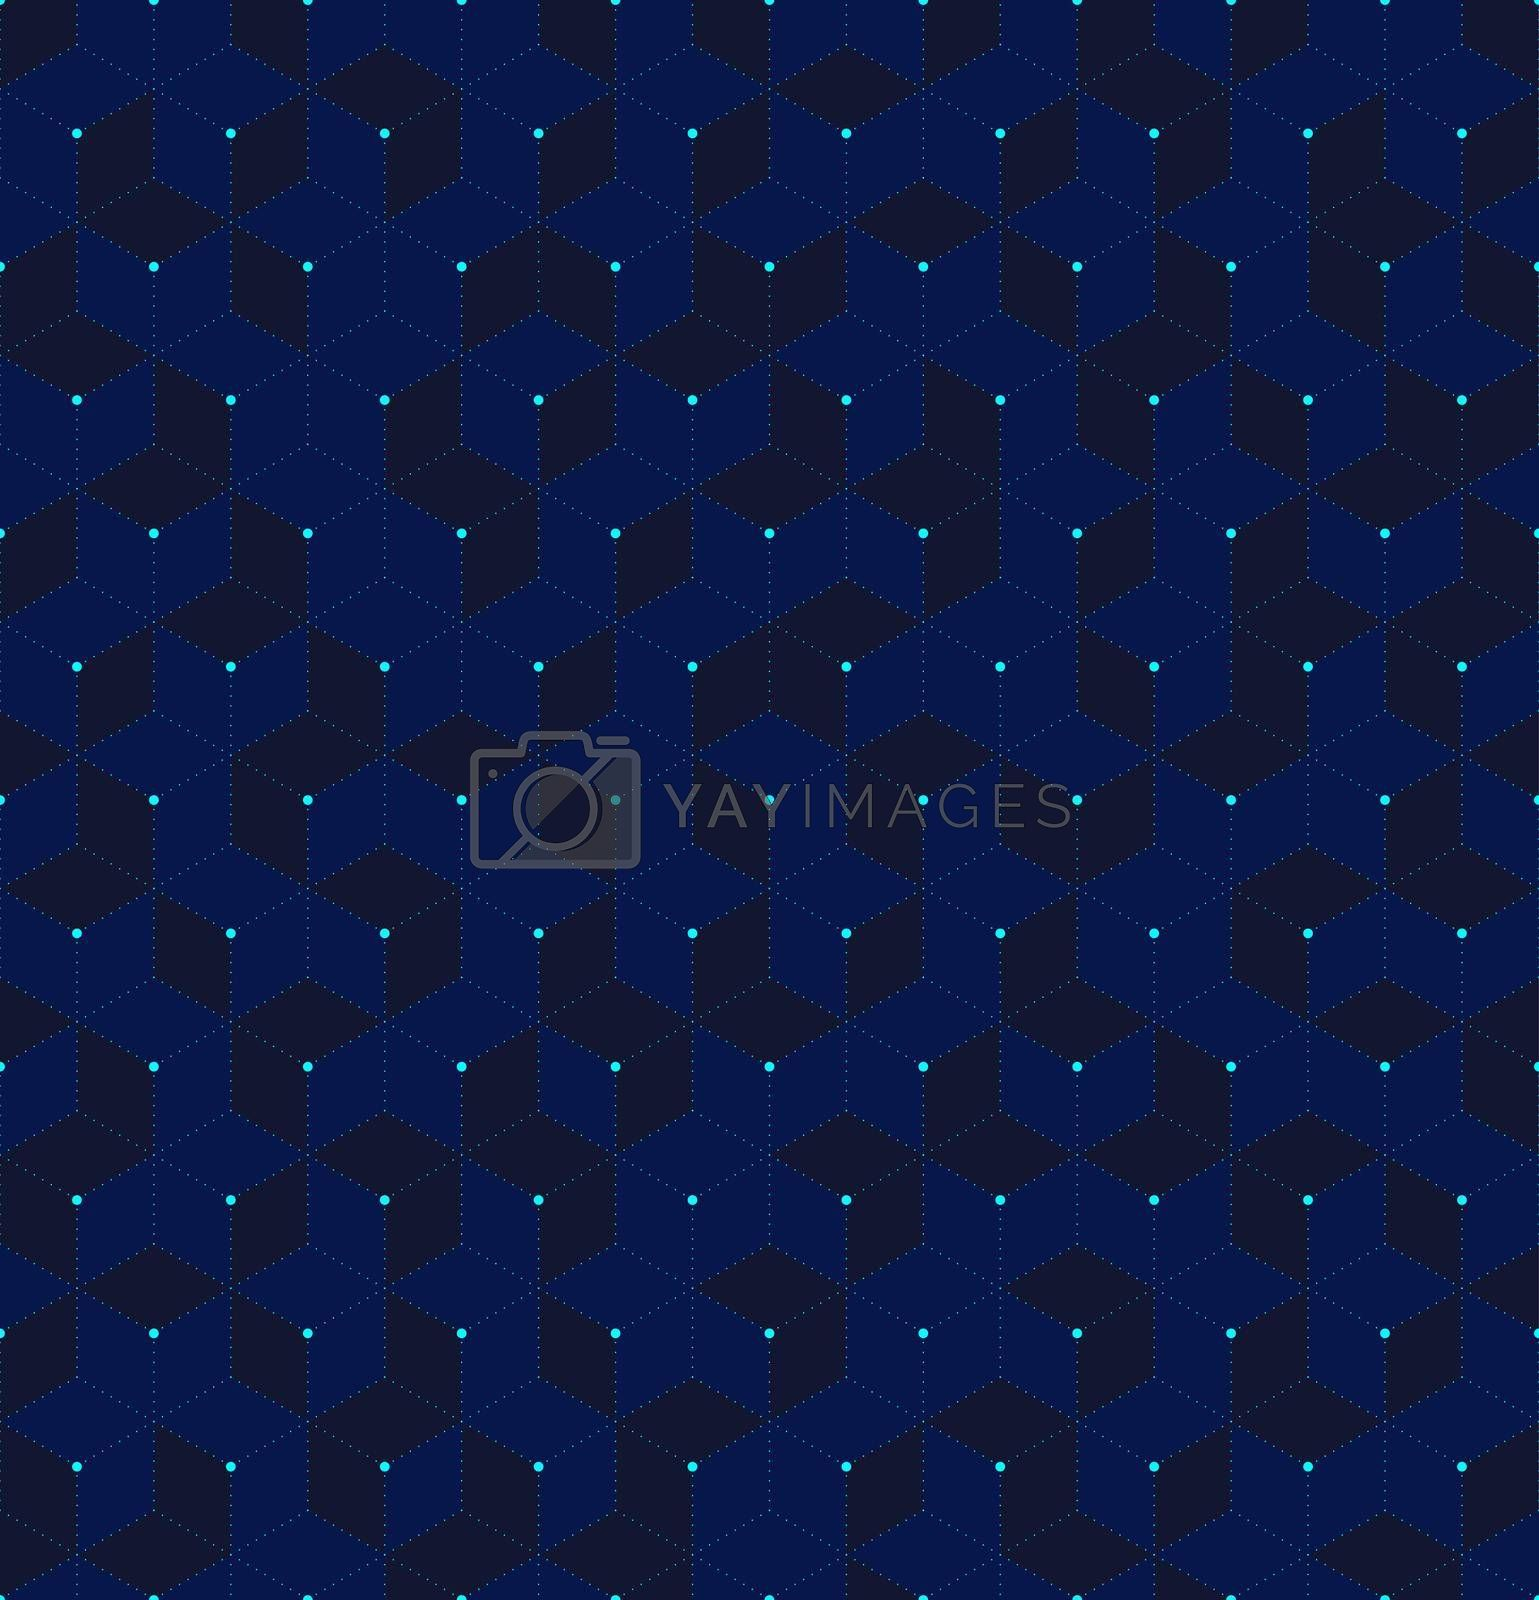 Abstract blue 3D cubes seamless pattern geometric hexagons with lines on grid background digital futuristic concept. Vector illustration